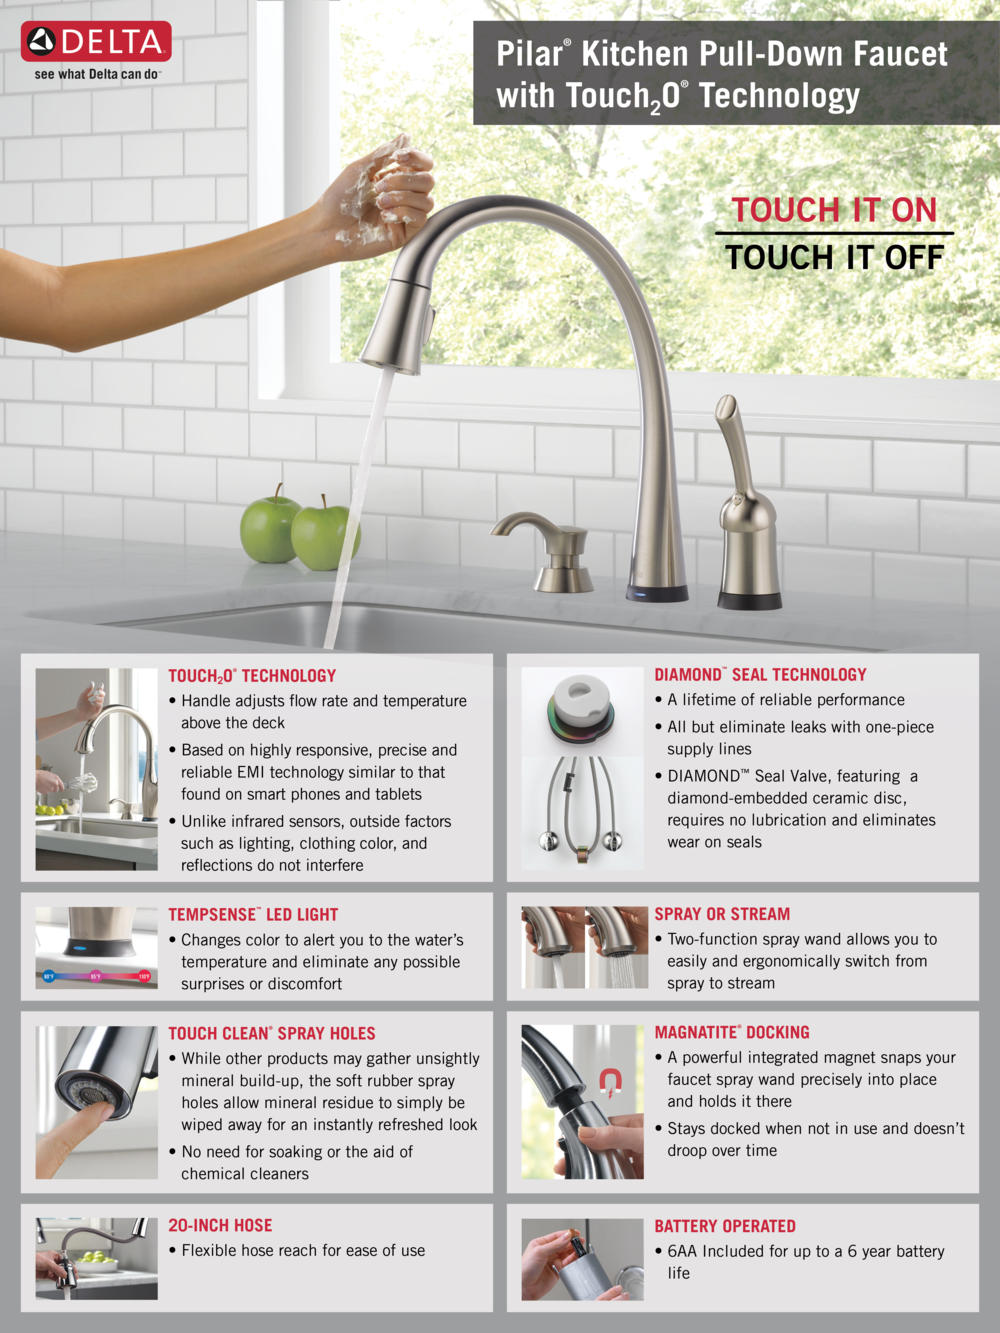 delta touch kitchen faucet Home Depot Delta Faucet Touch2OKitchen Infographic